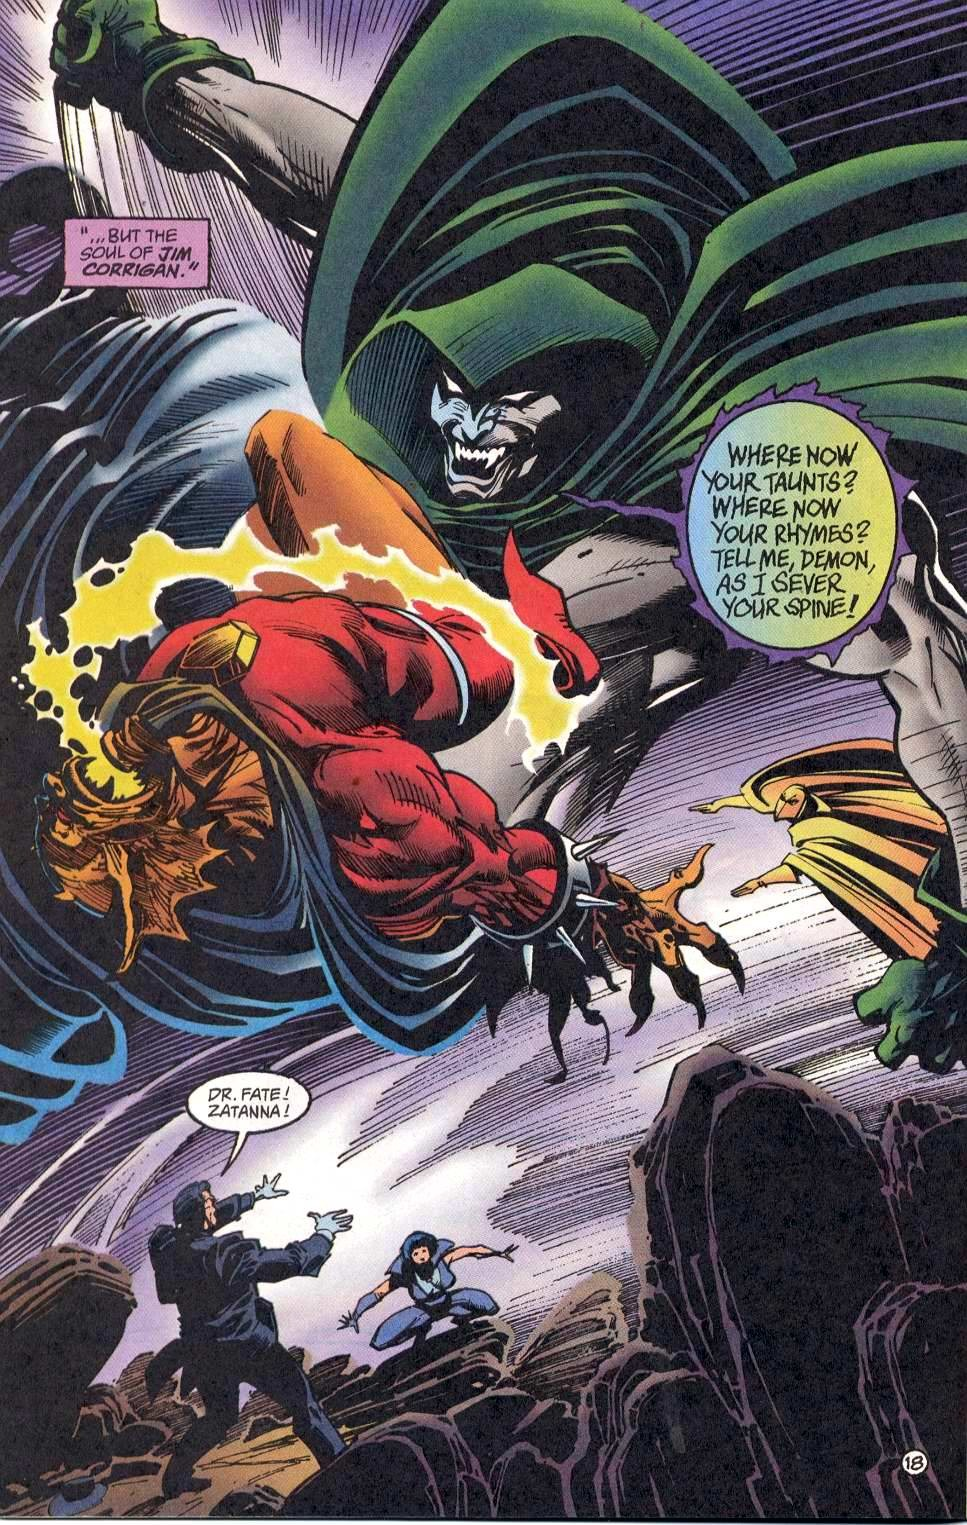 This time The Spectre merged with Eclipso and Etrigan takes a back hand from him